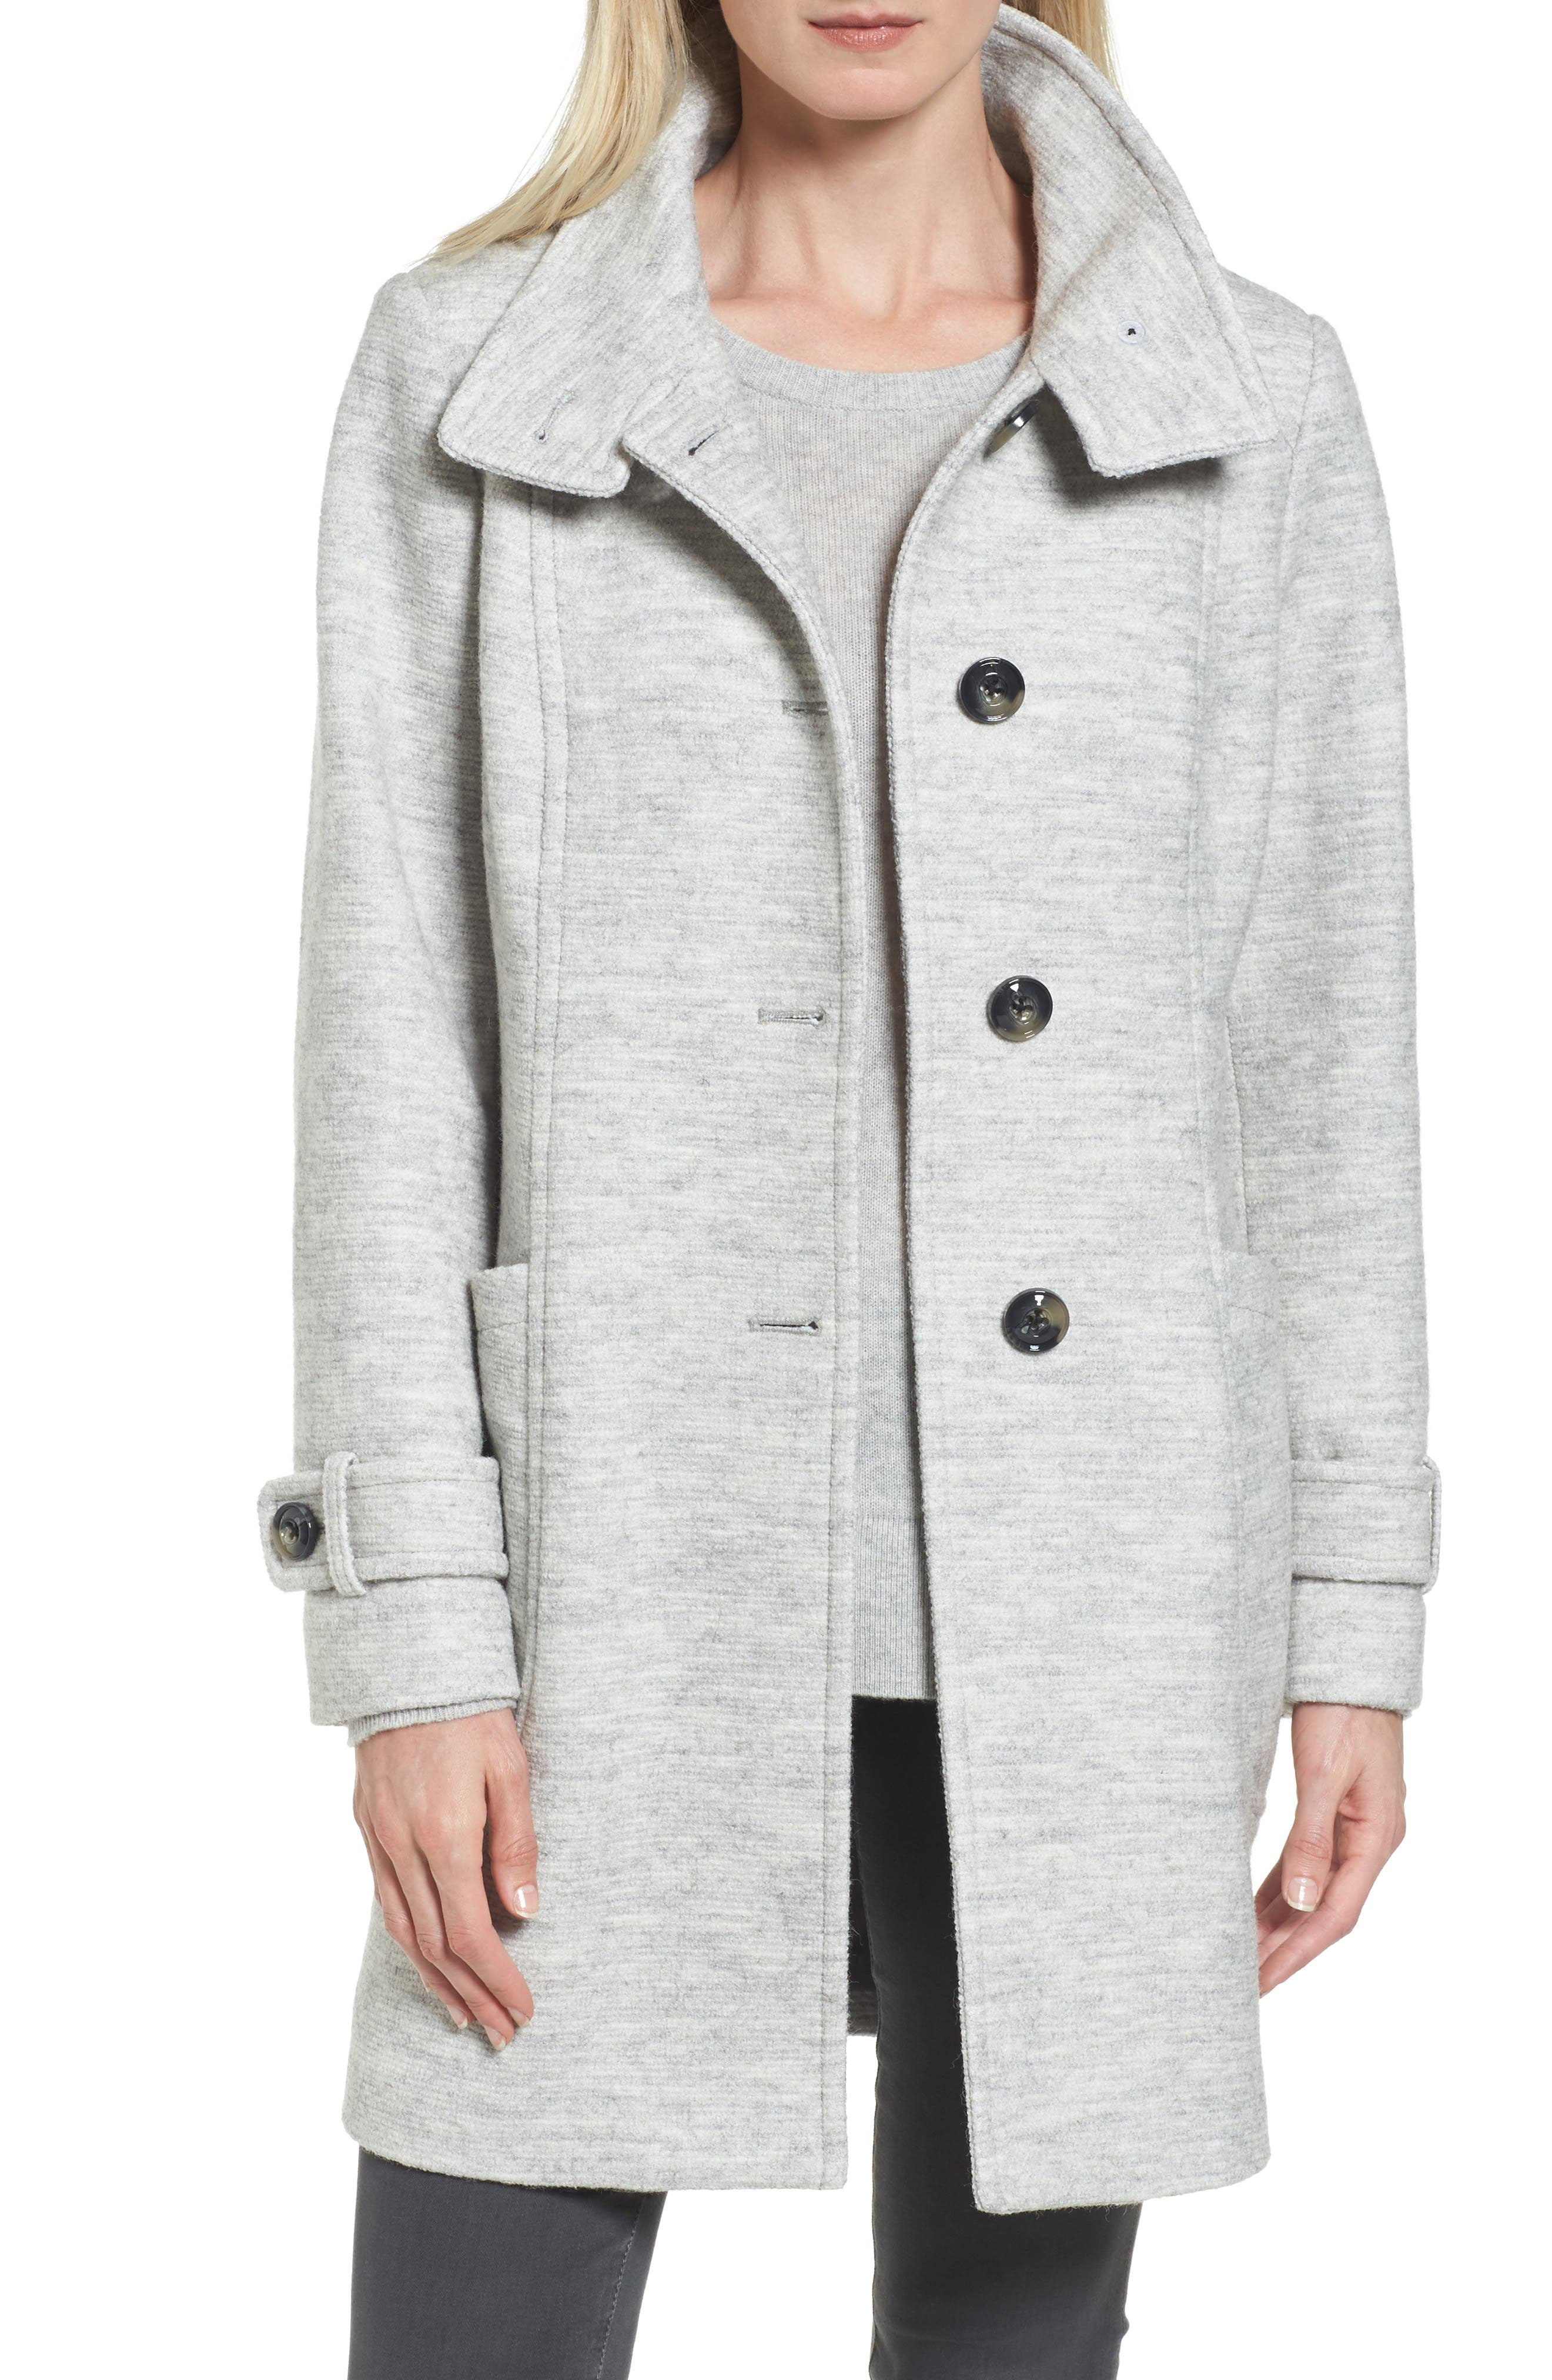 Stand Collar Coat,                             Main thumbnail 1, color,                             Pale Grey